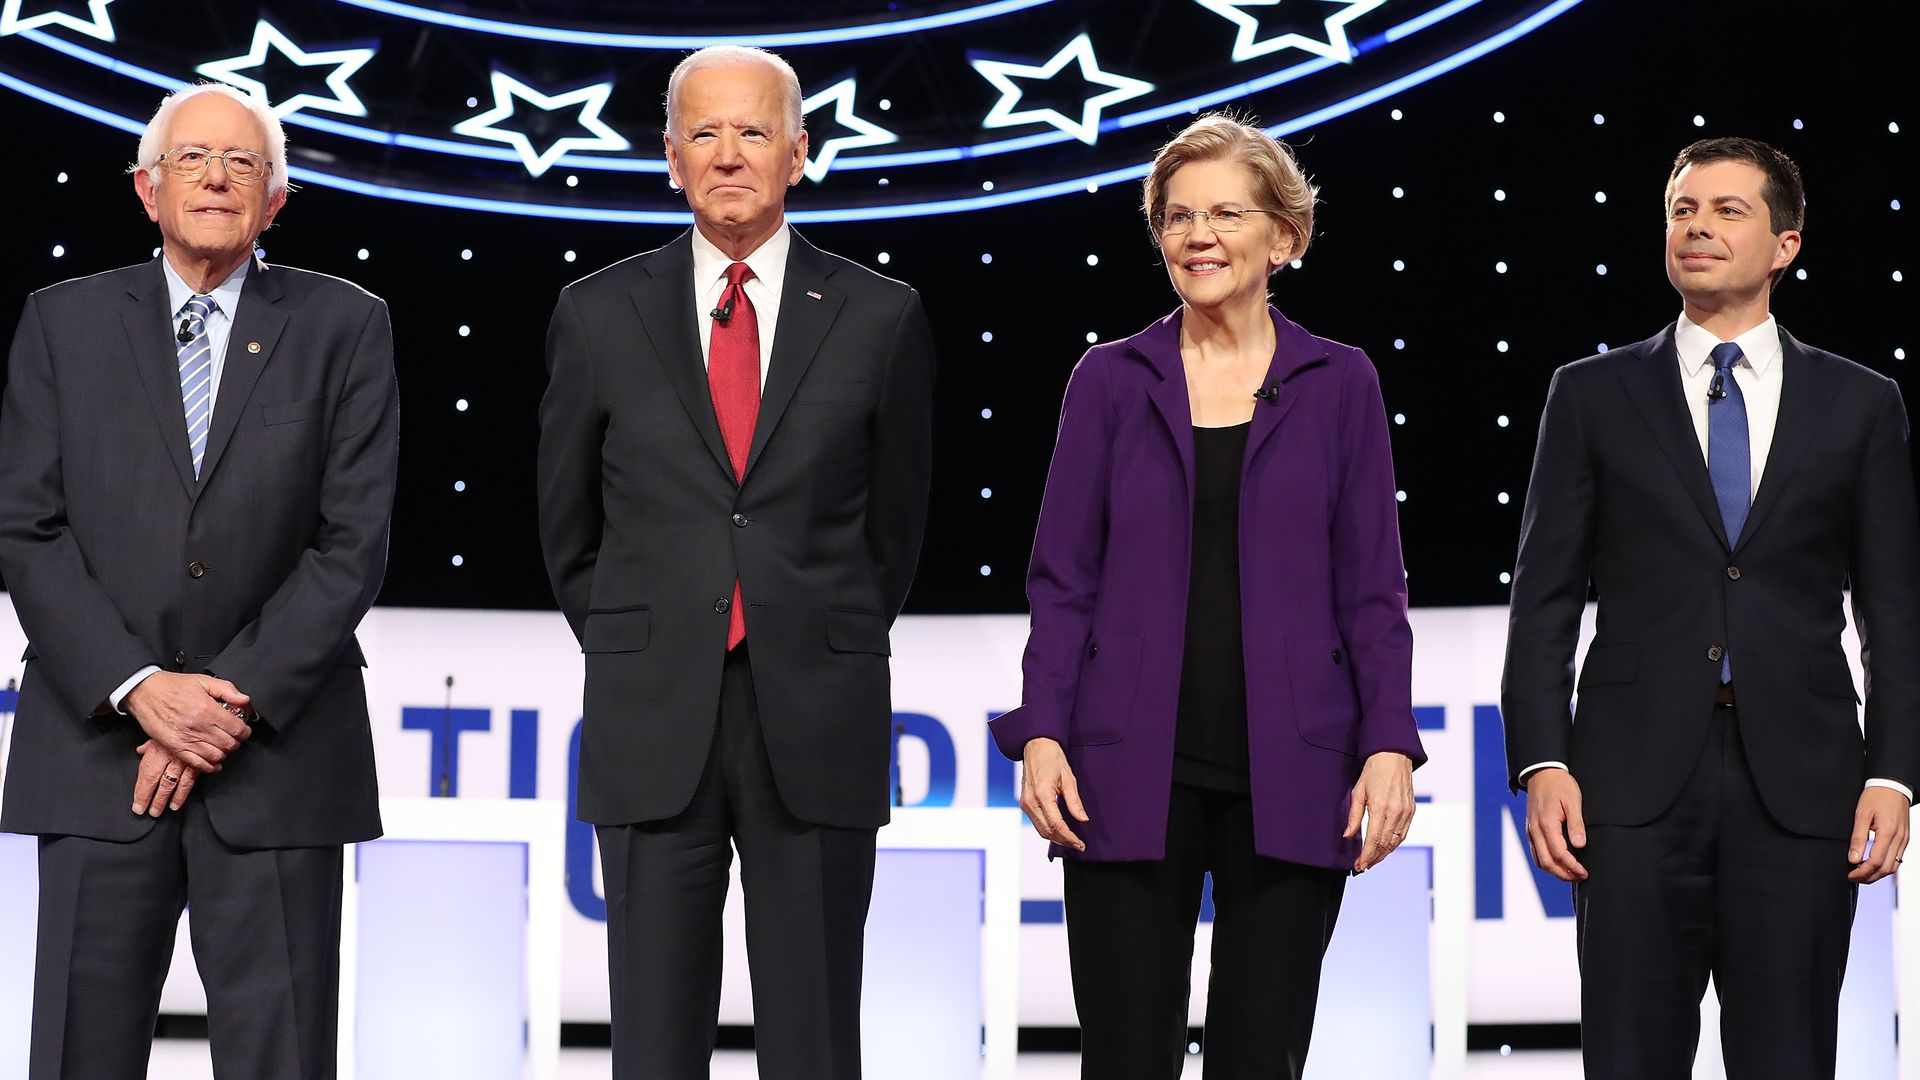 Sen. Bernie Sanders (I-VT), Joe Biden, Sen. Elizabeth Warren (D-MA), and South Bend Mayor Pete Buttigieg are introduced before the Democratic Presidential Debate at Otterbein University on October 15